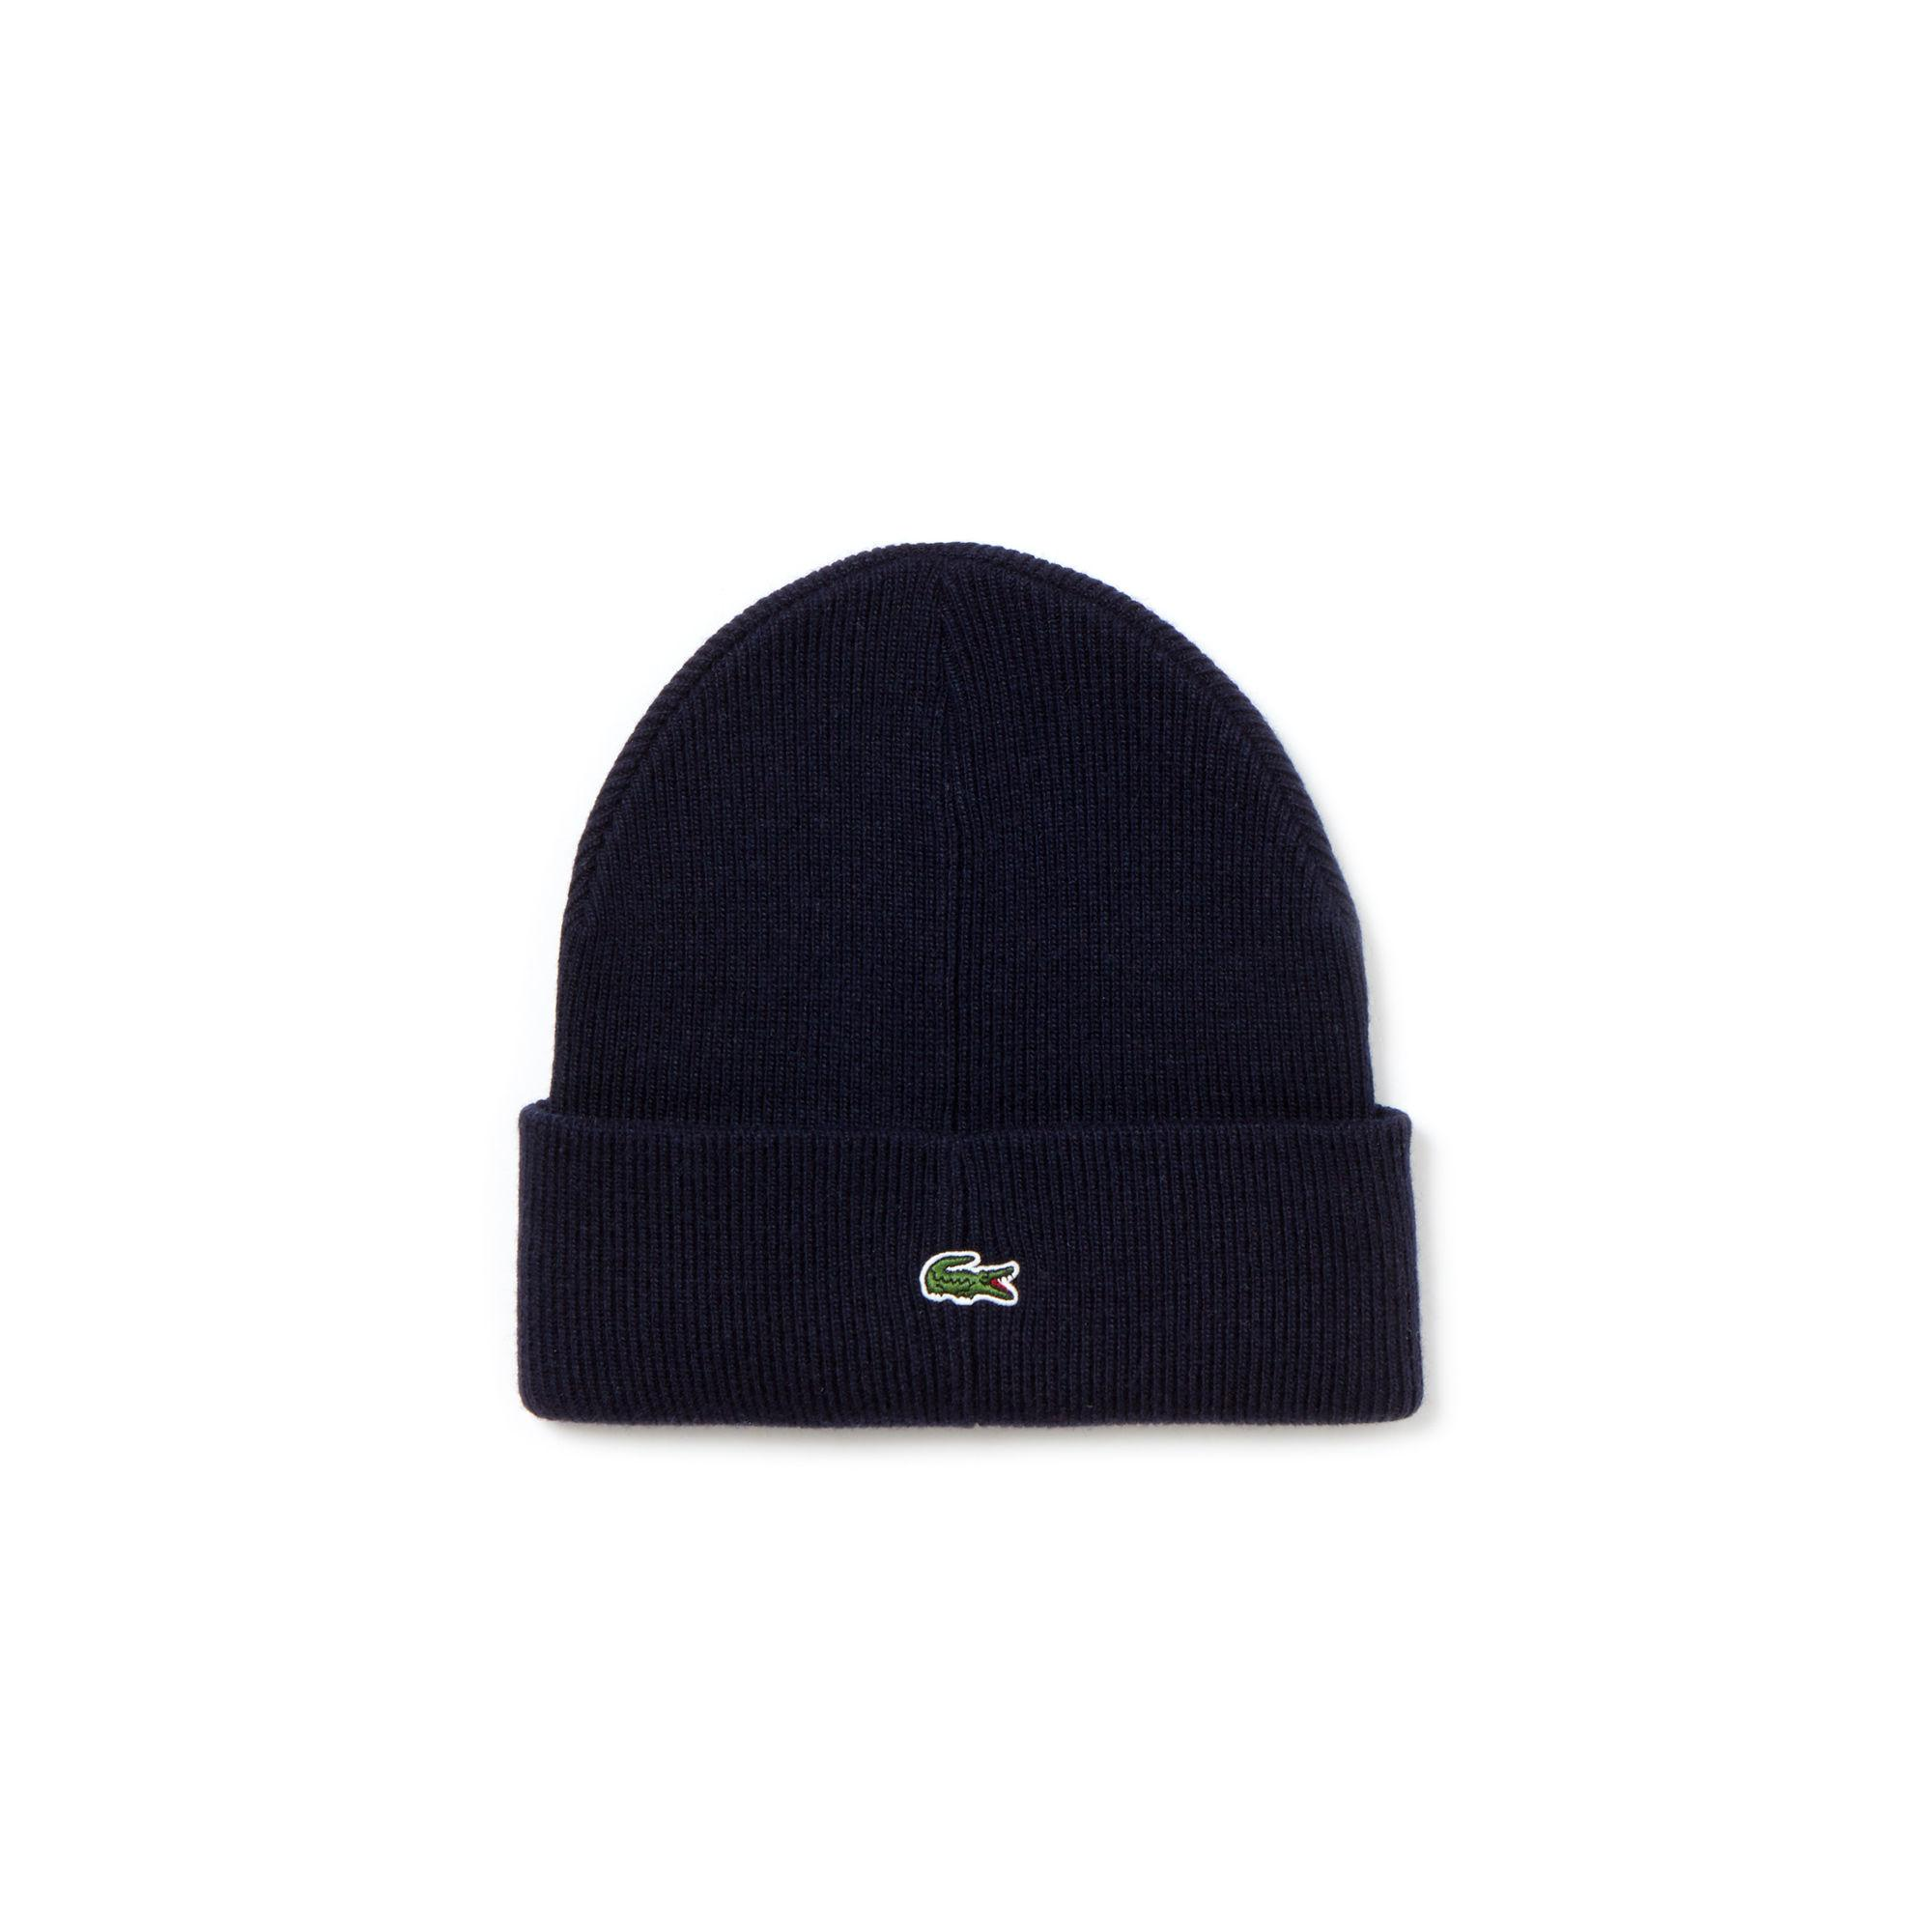 af507e1a3573a Lyst - Lacoste Unisex Live Turned Edge Ribbed Wool Beanie in Blue ...